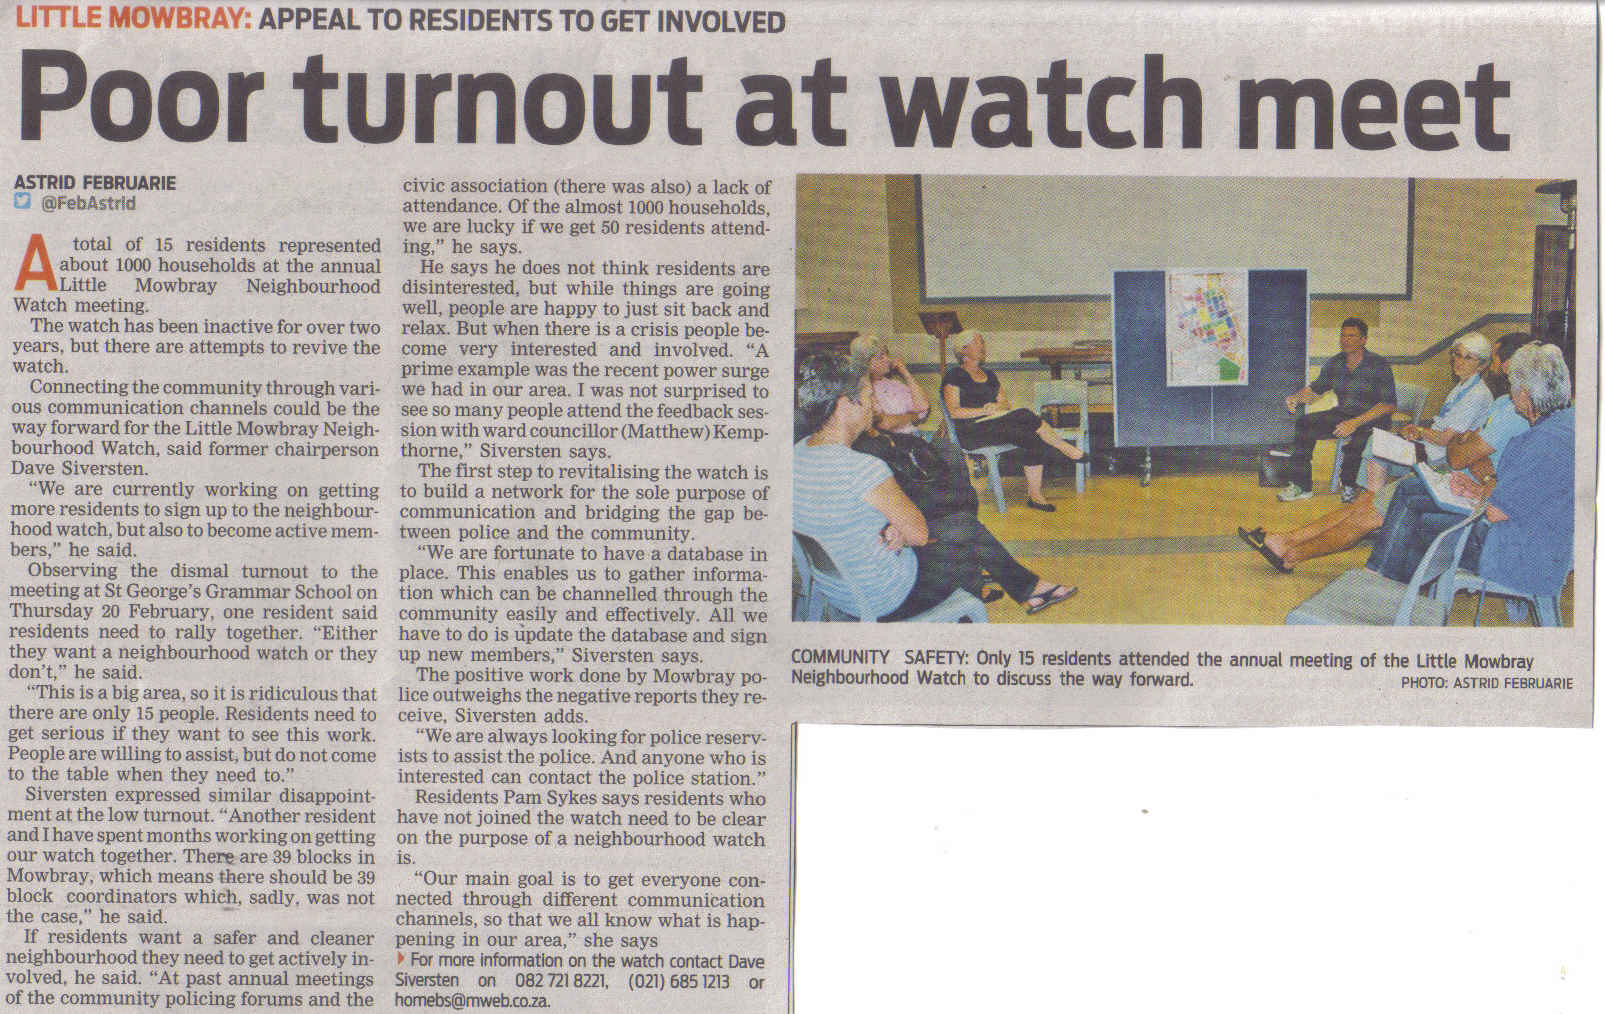 Poor turnout at watch meet (People's Post, 13 February 2013)